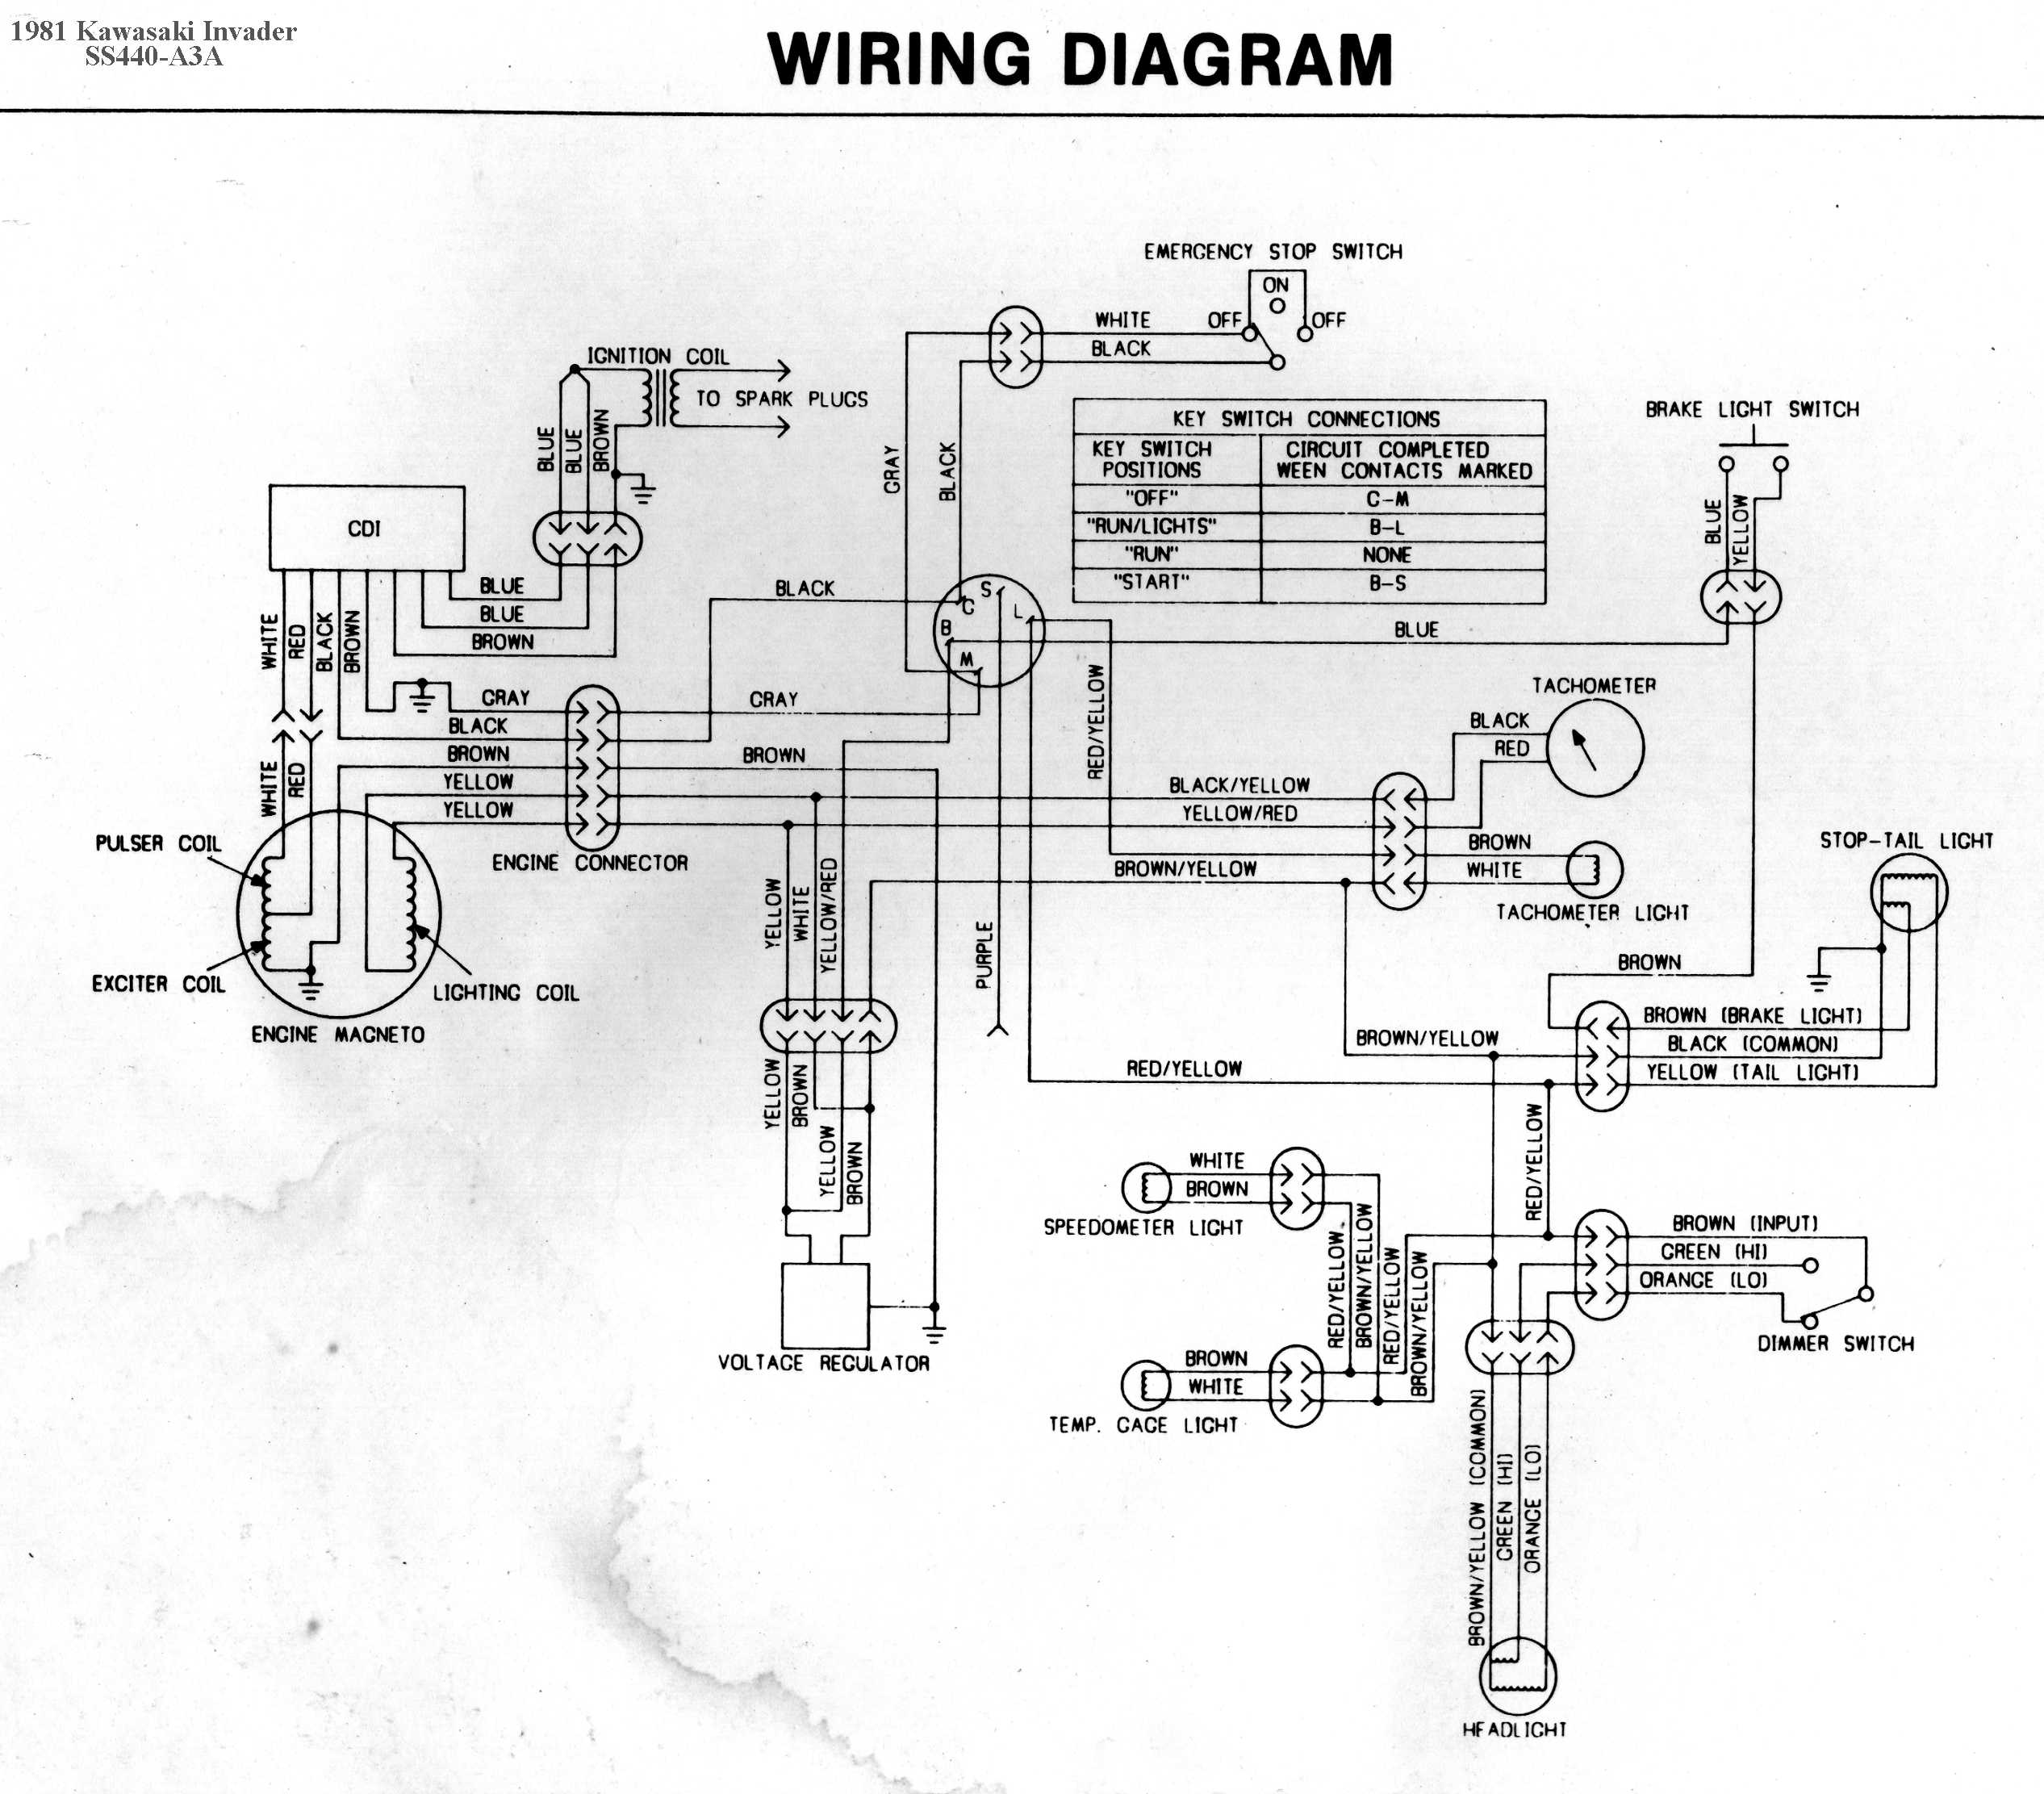 small resolution of snowmobile wiring diagram schema diagram database snowmobile wiring diagrams snowmobile wiring diagram source arctic cat